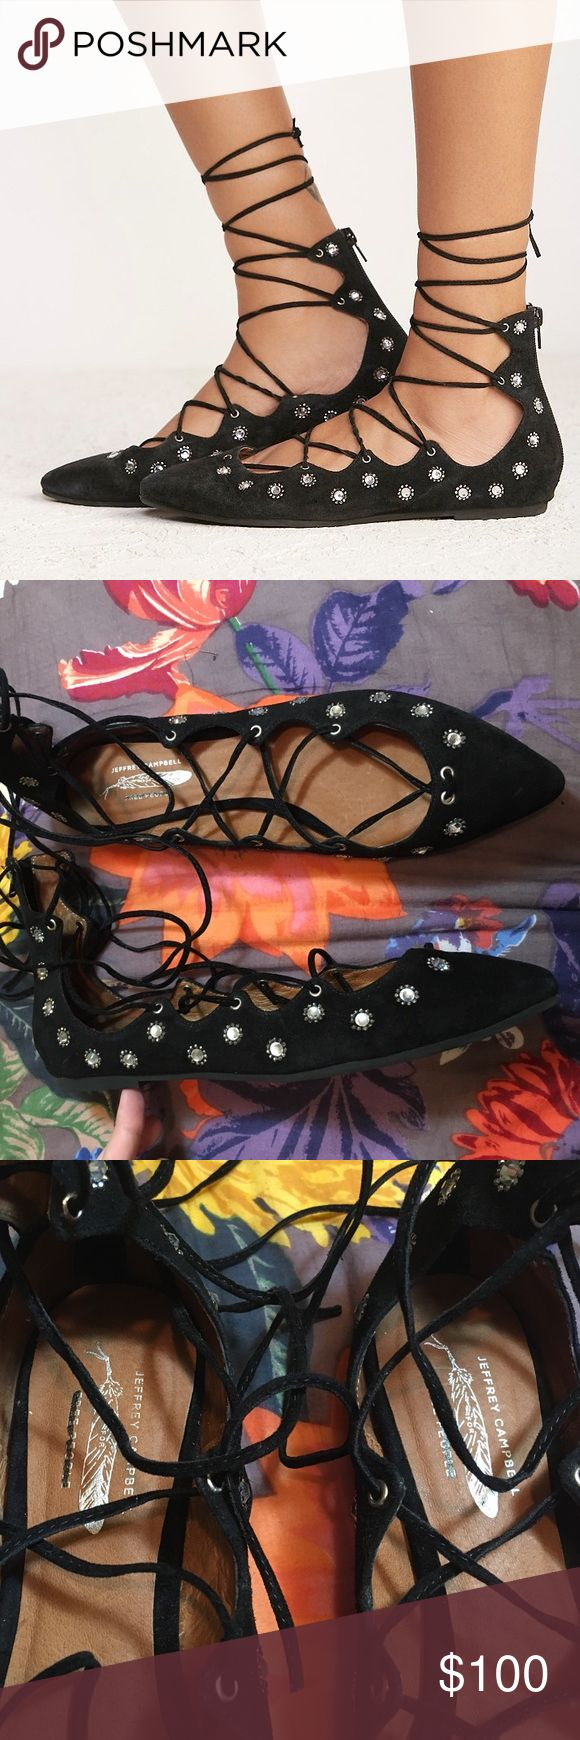 NWOT Jeffrey Campbell for FP Spring Sparkle flats Brand new never worn Free People Shoes Flats & Loafers